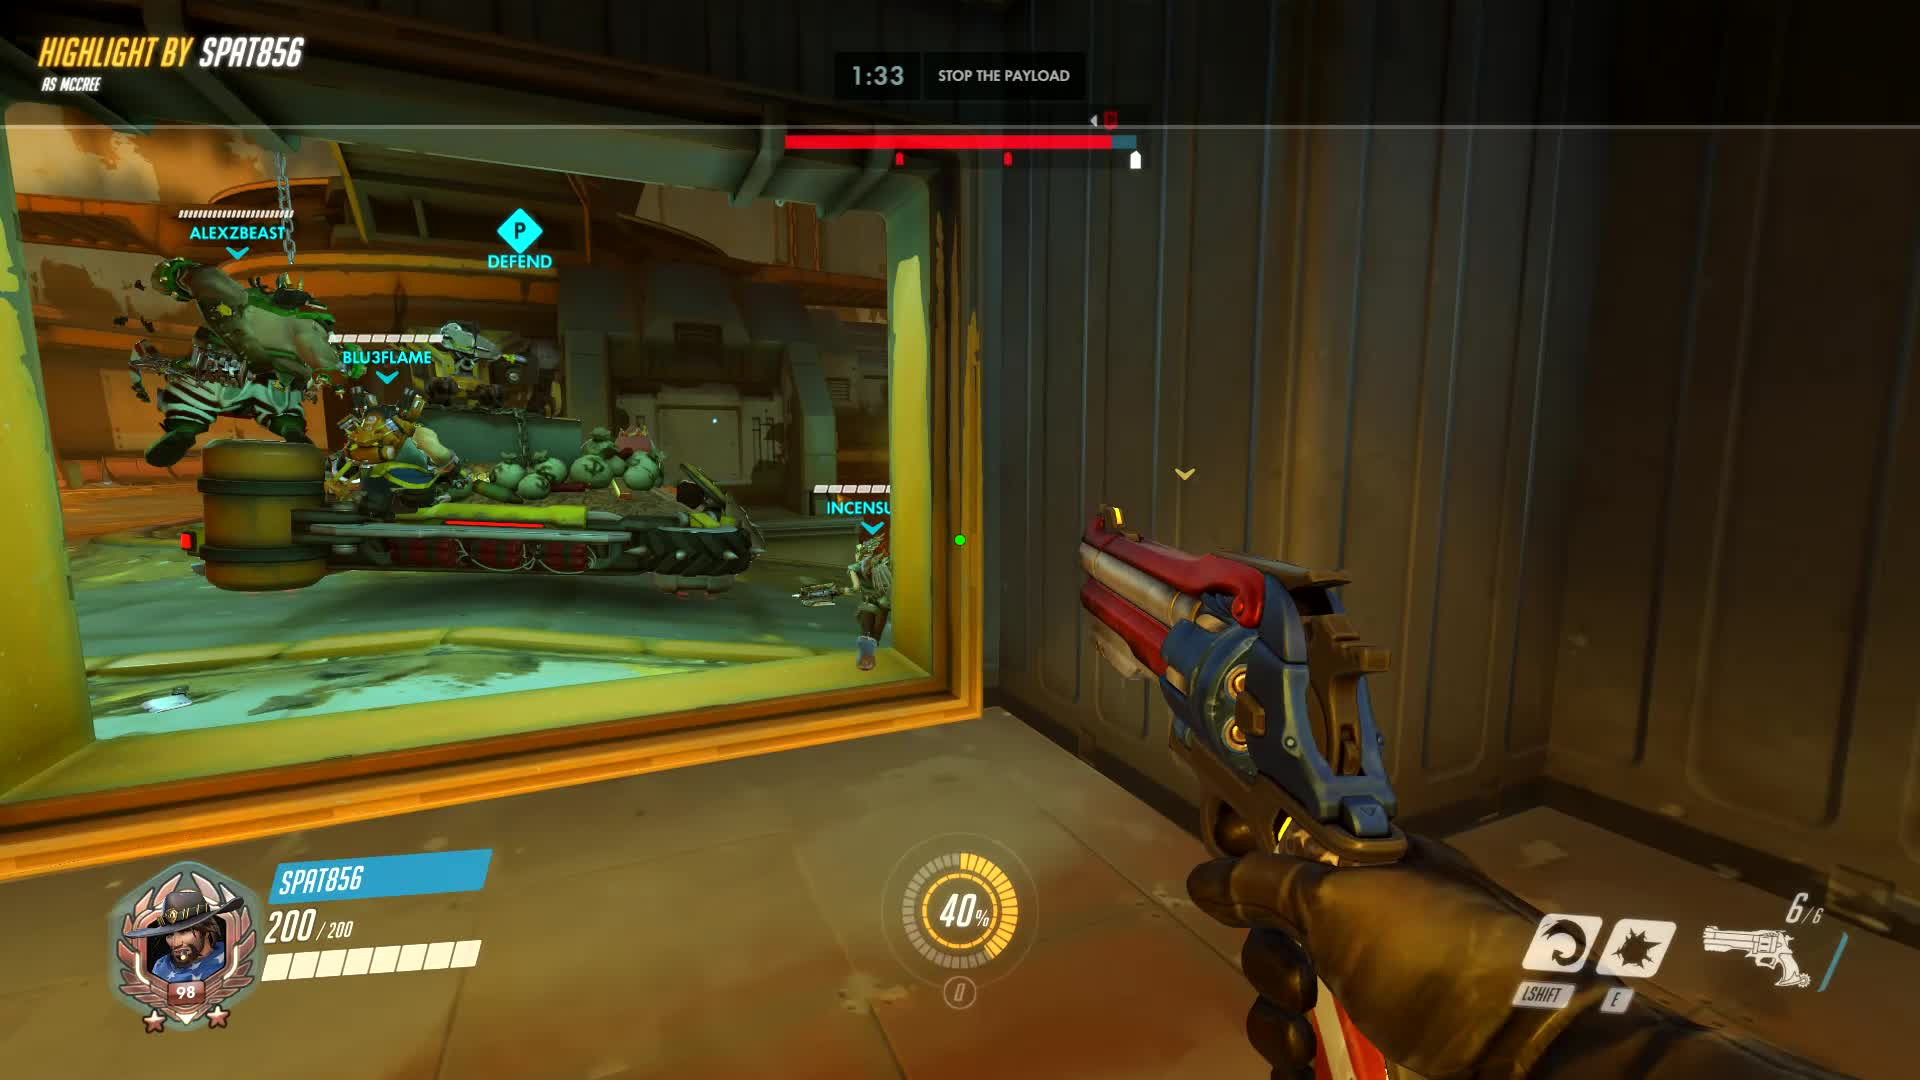 aim, cant, cantaim, forth, mcree, overwatch, shiz, sucks, whatisthis, wtf, Freak This Game GIFs